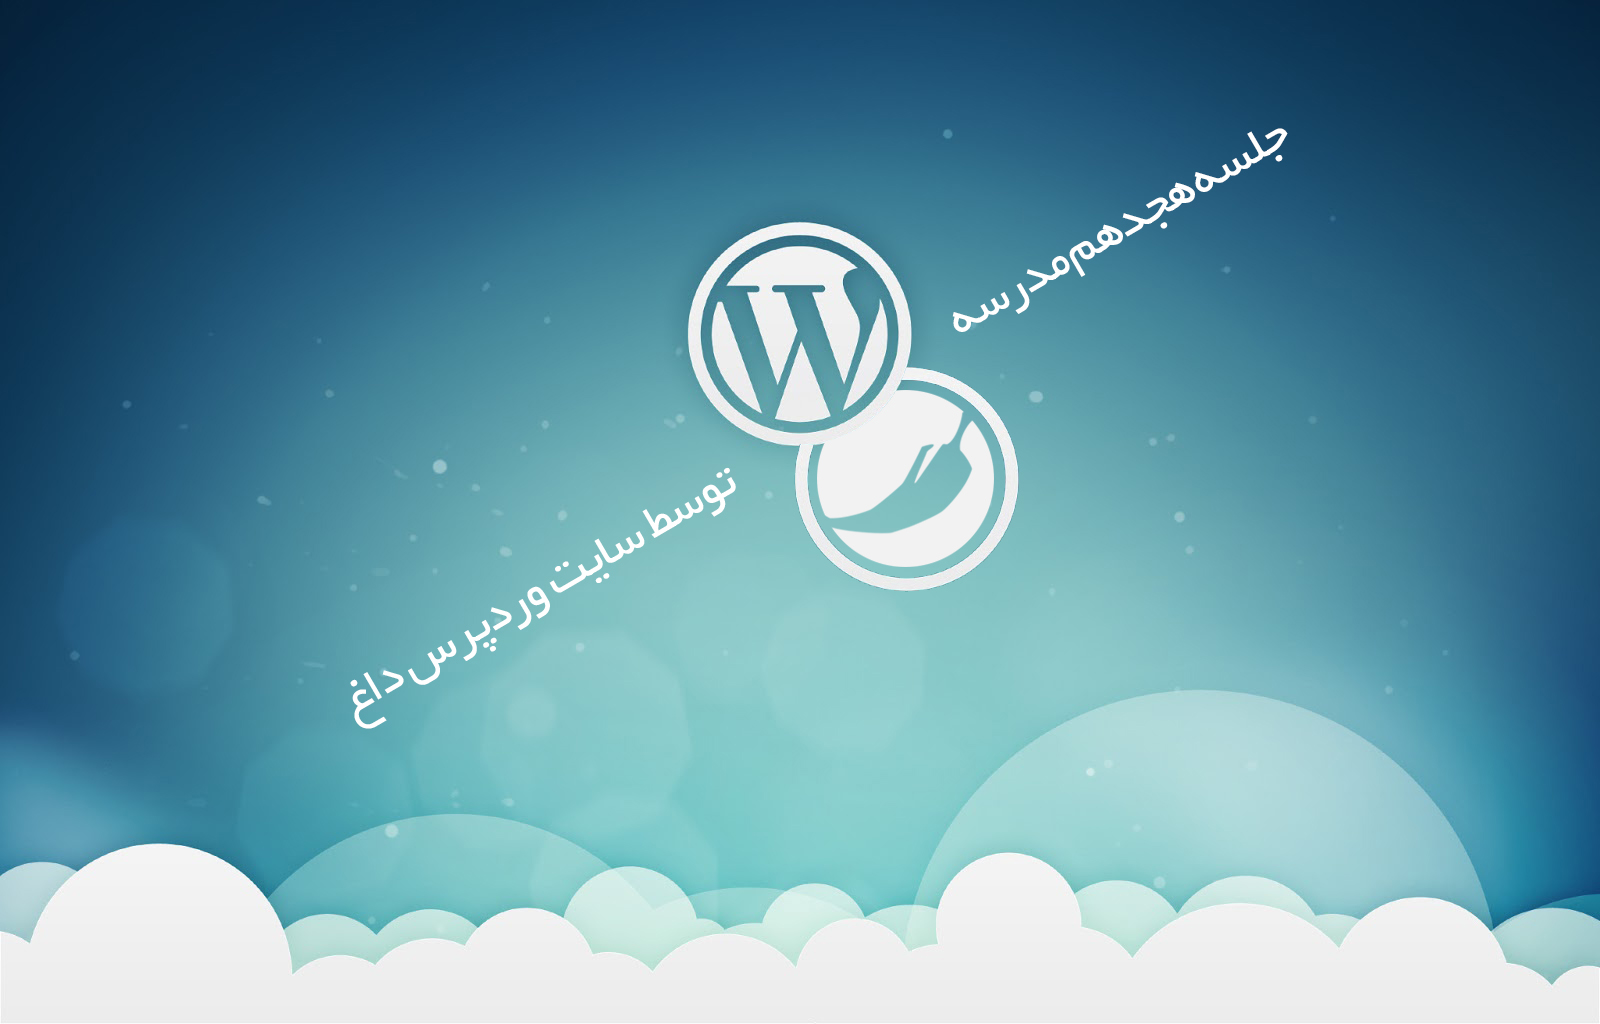 school-wordpress-redwp-18